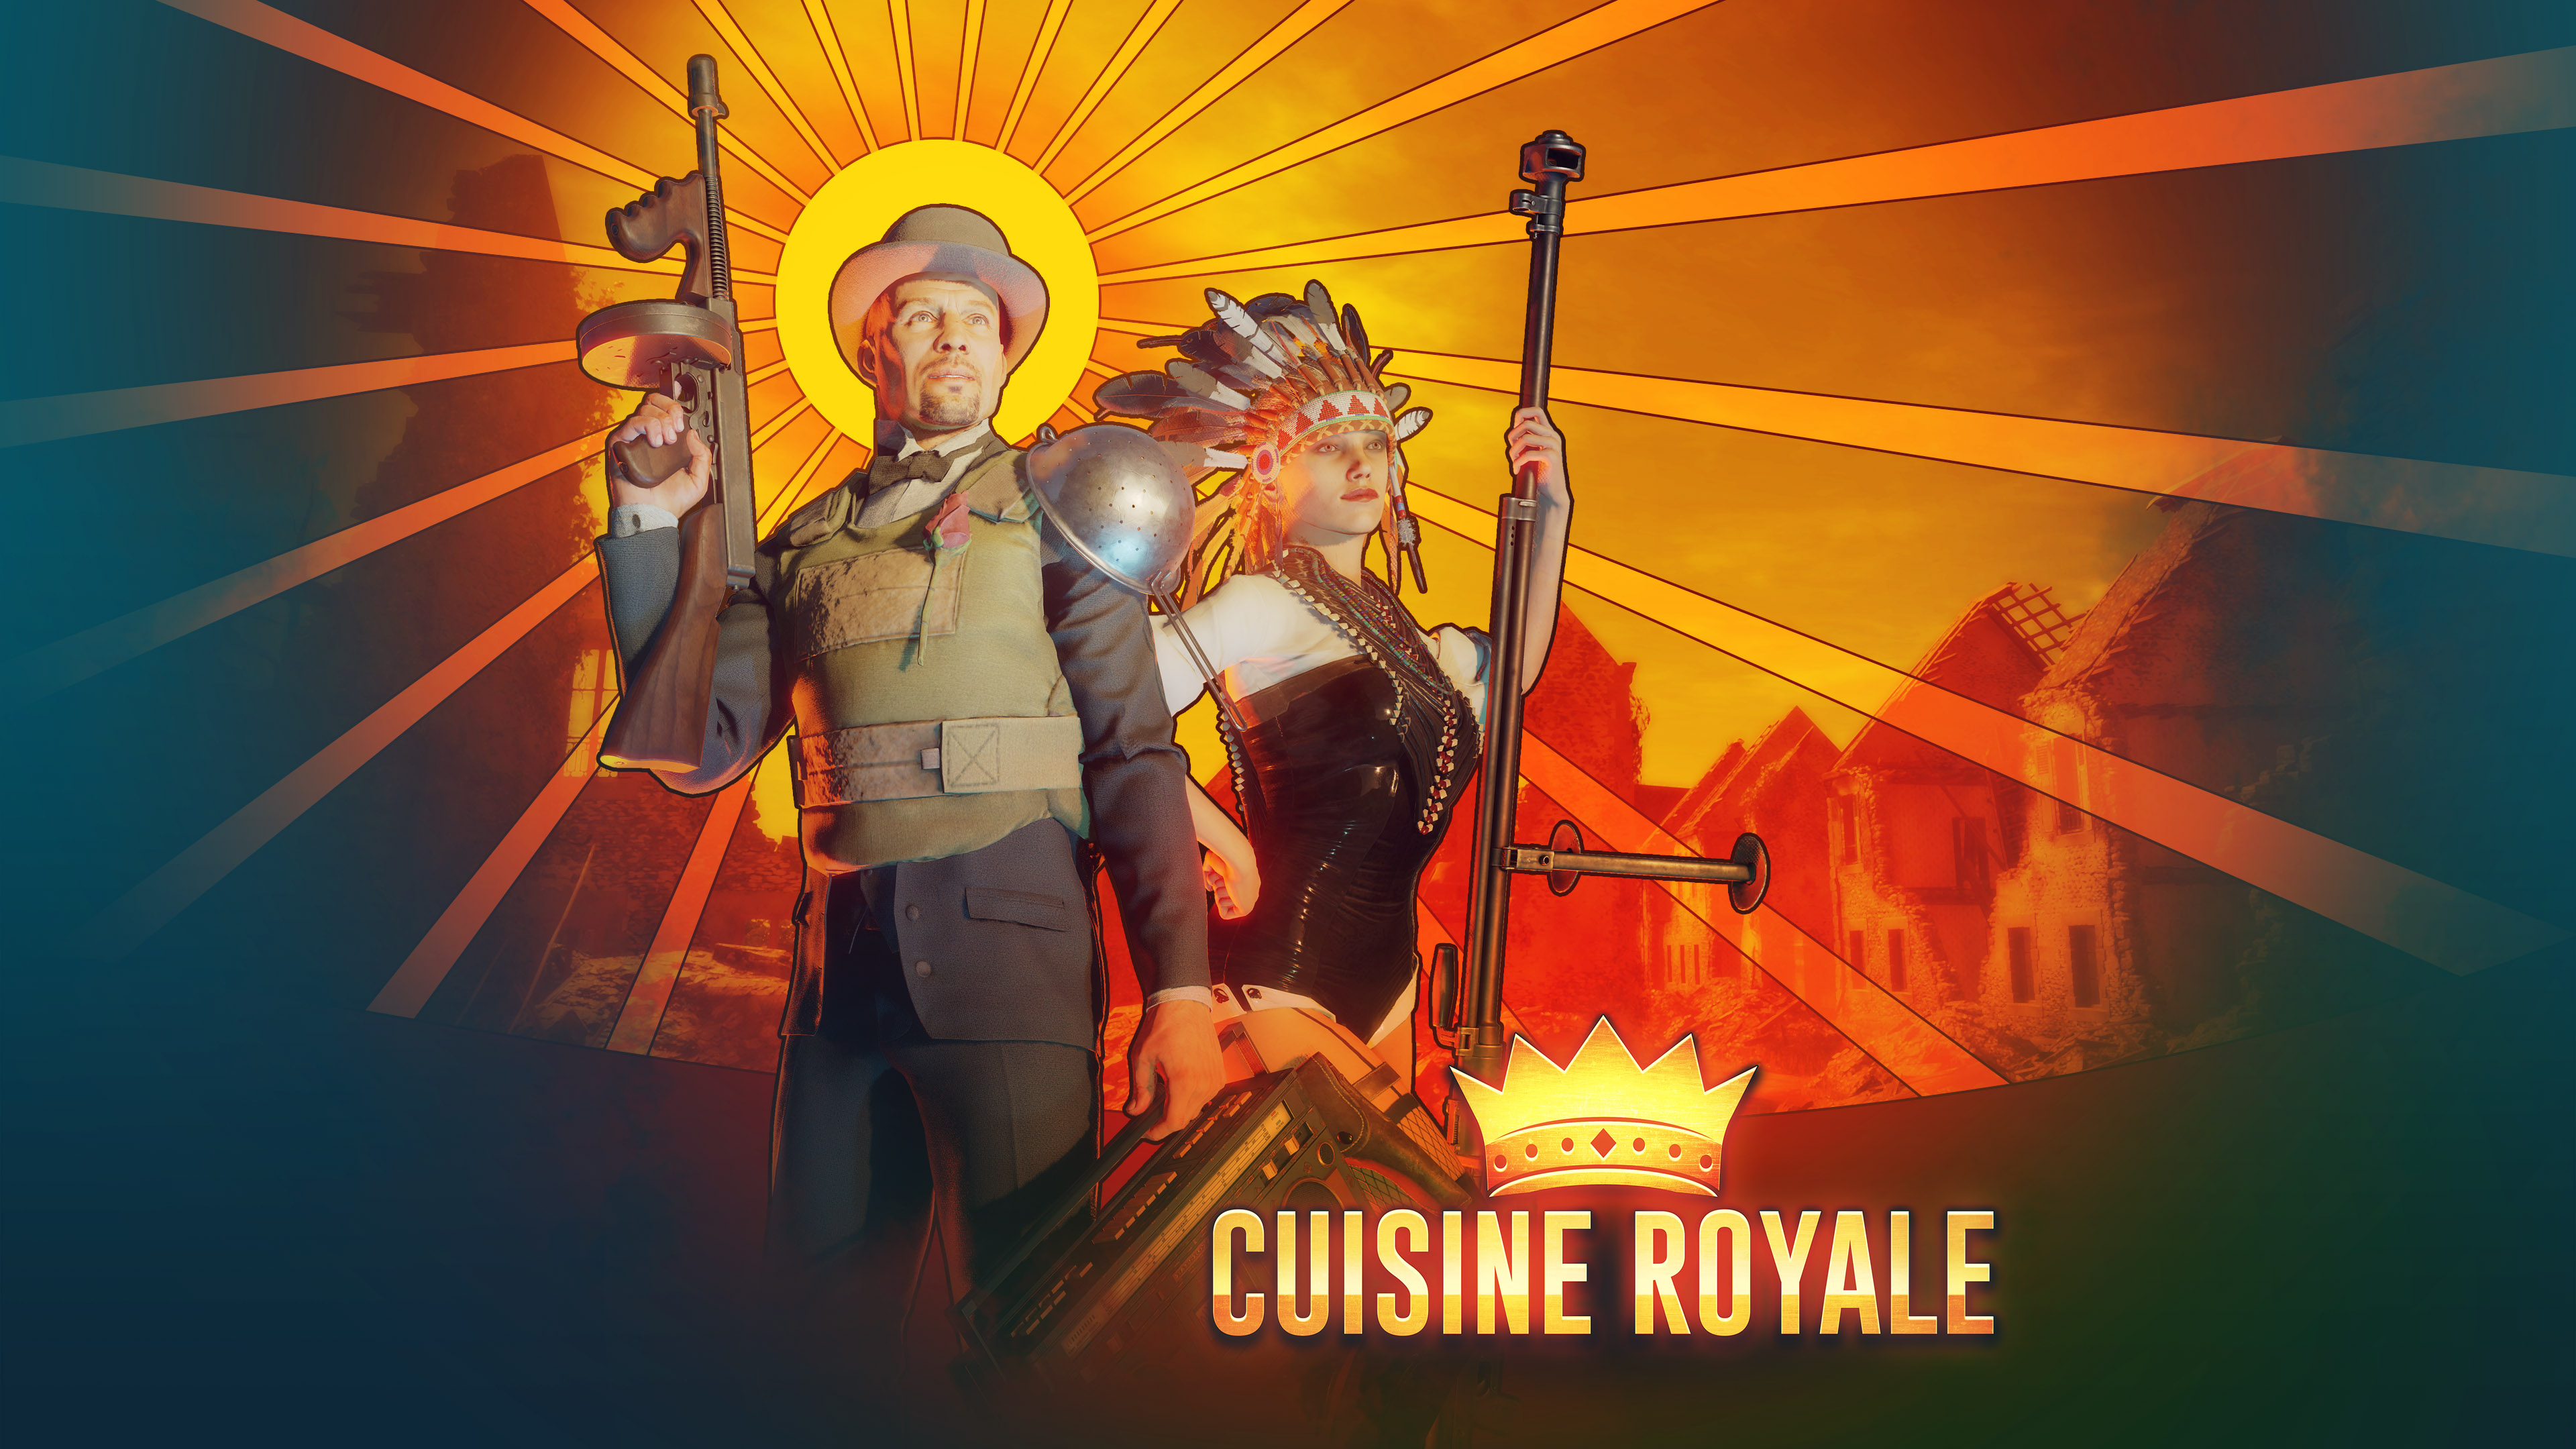 Cuisine Royale How To Heal Cuisine Royale Arrives And Brings Complex Battle Royale